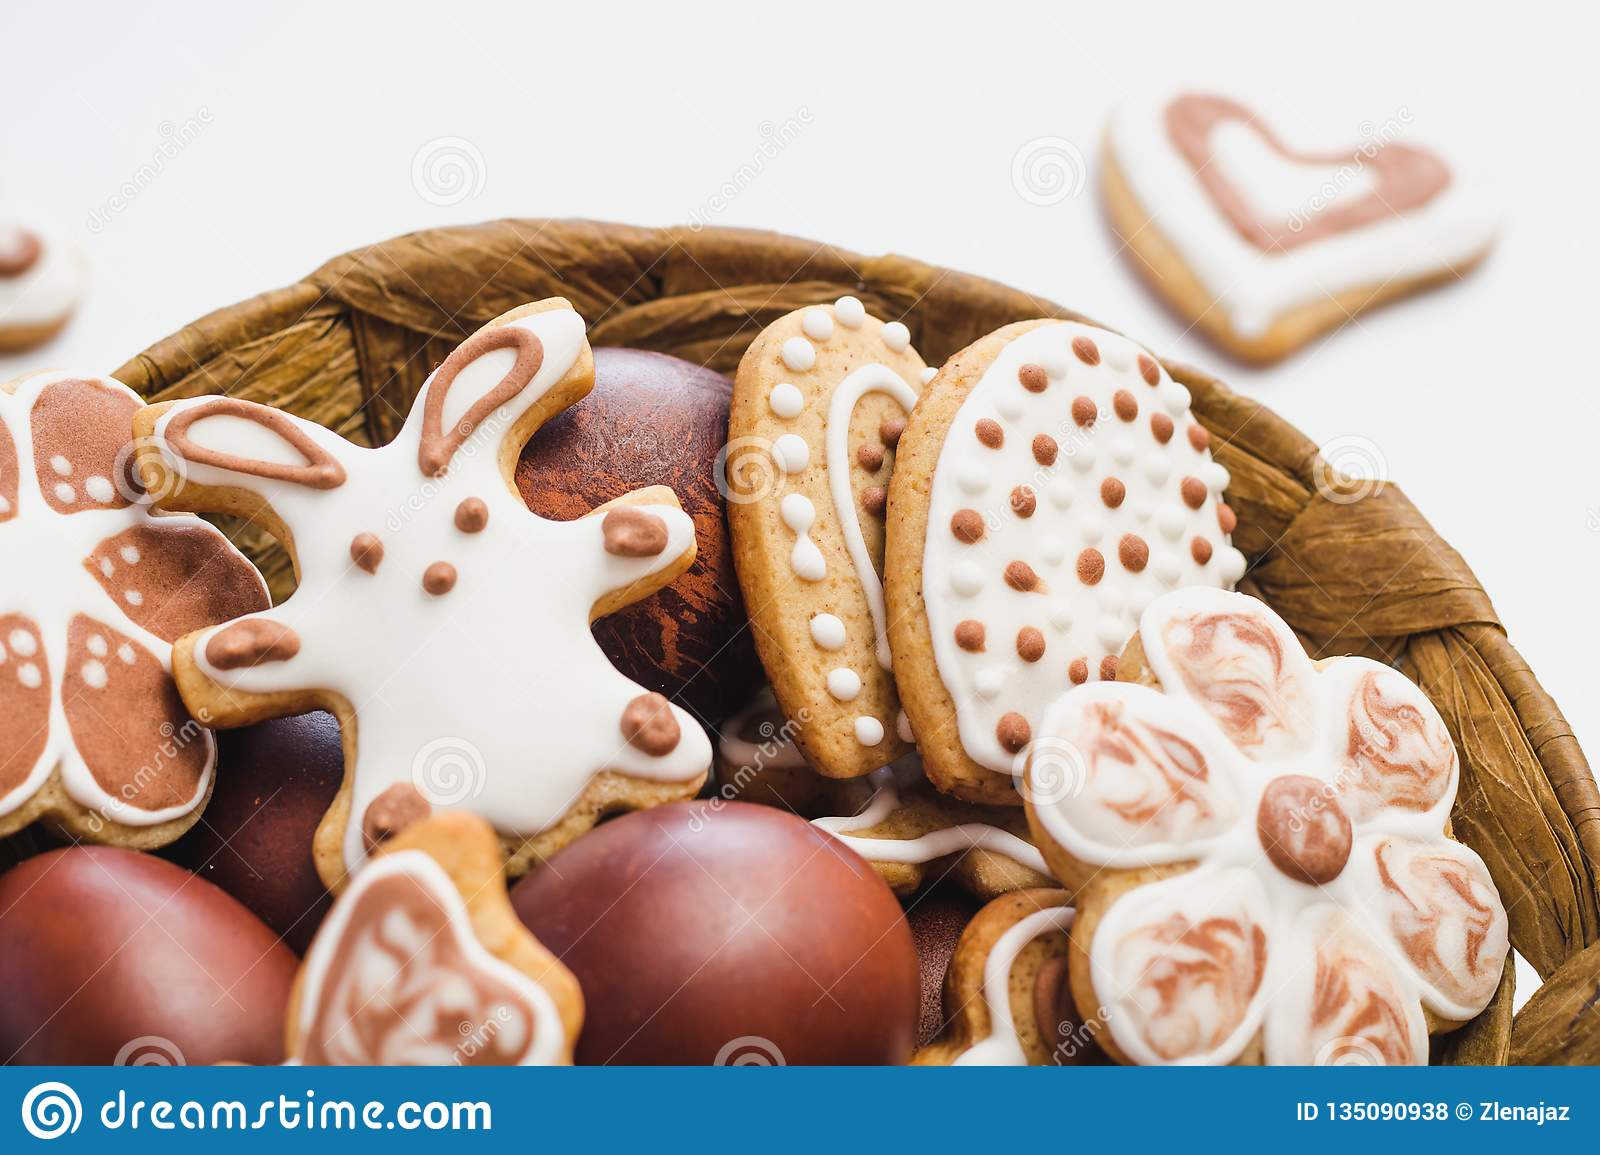 Gingerbread cookies in the shape of an Easter bunny, flowers and hearts, covered with white and chocolate icing-sugar, and easter